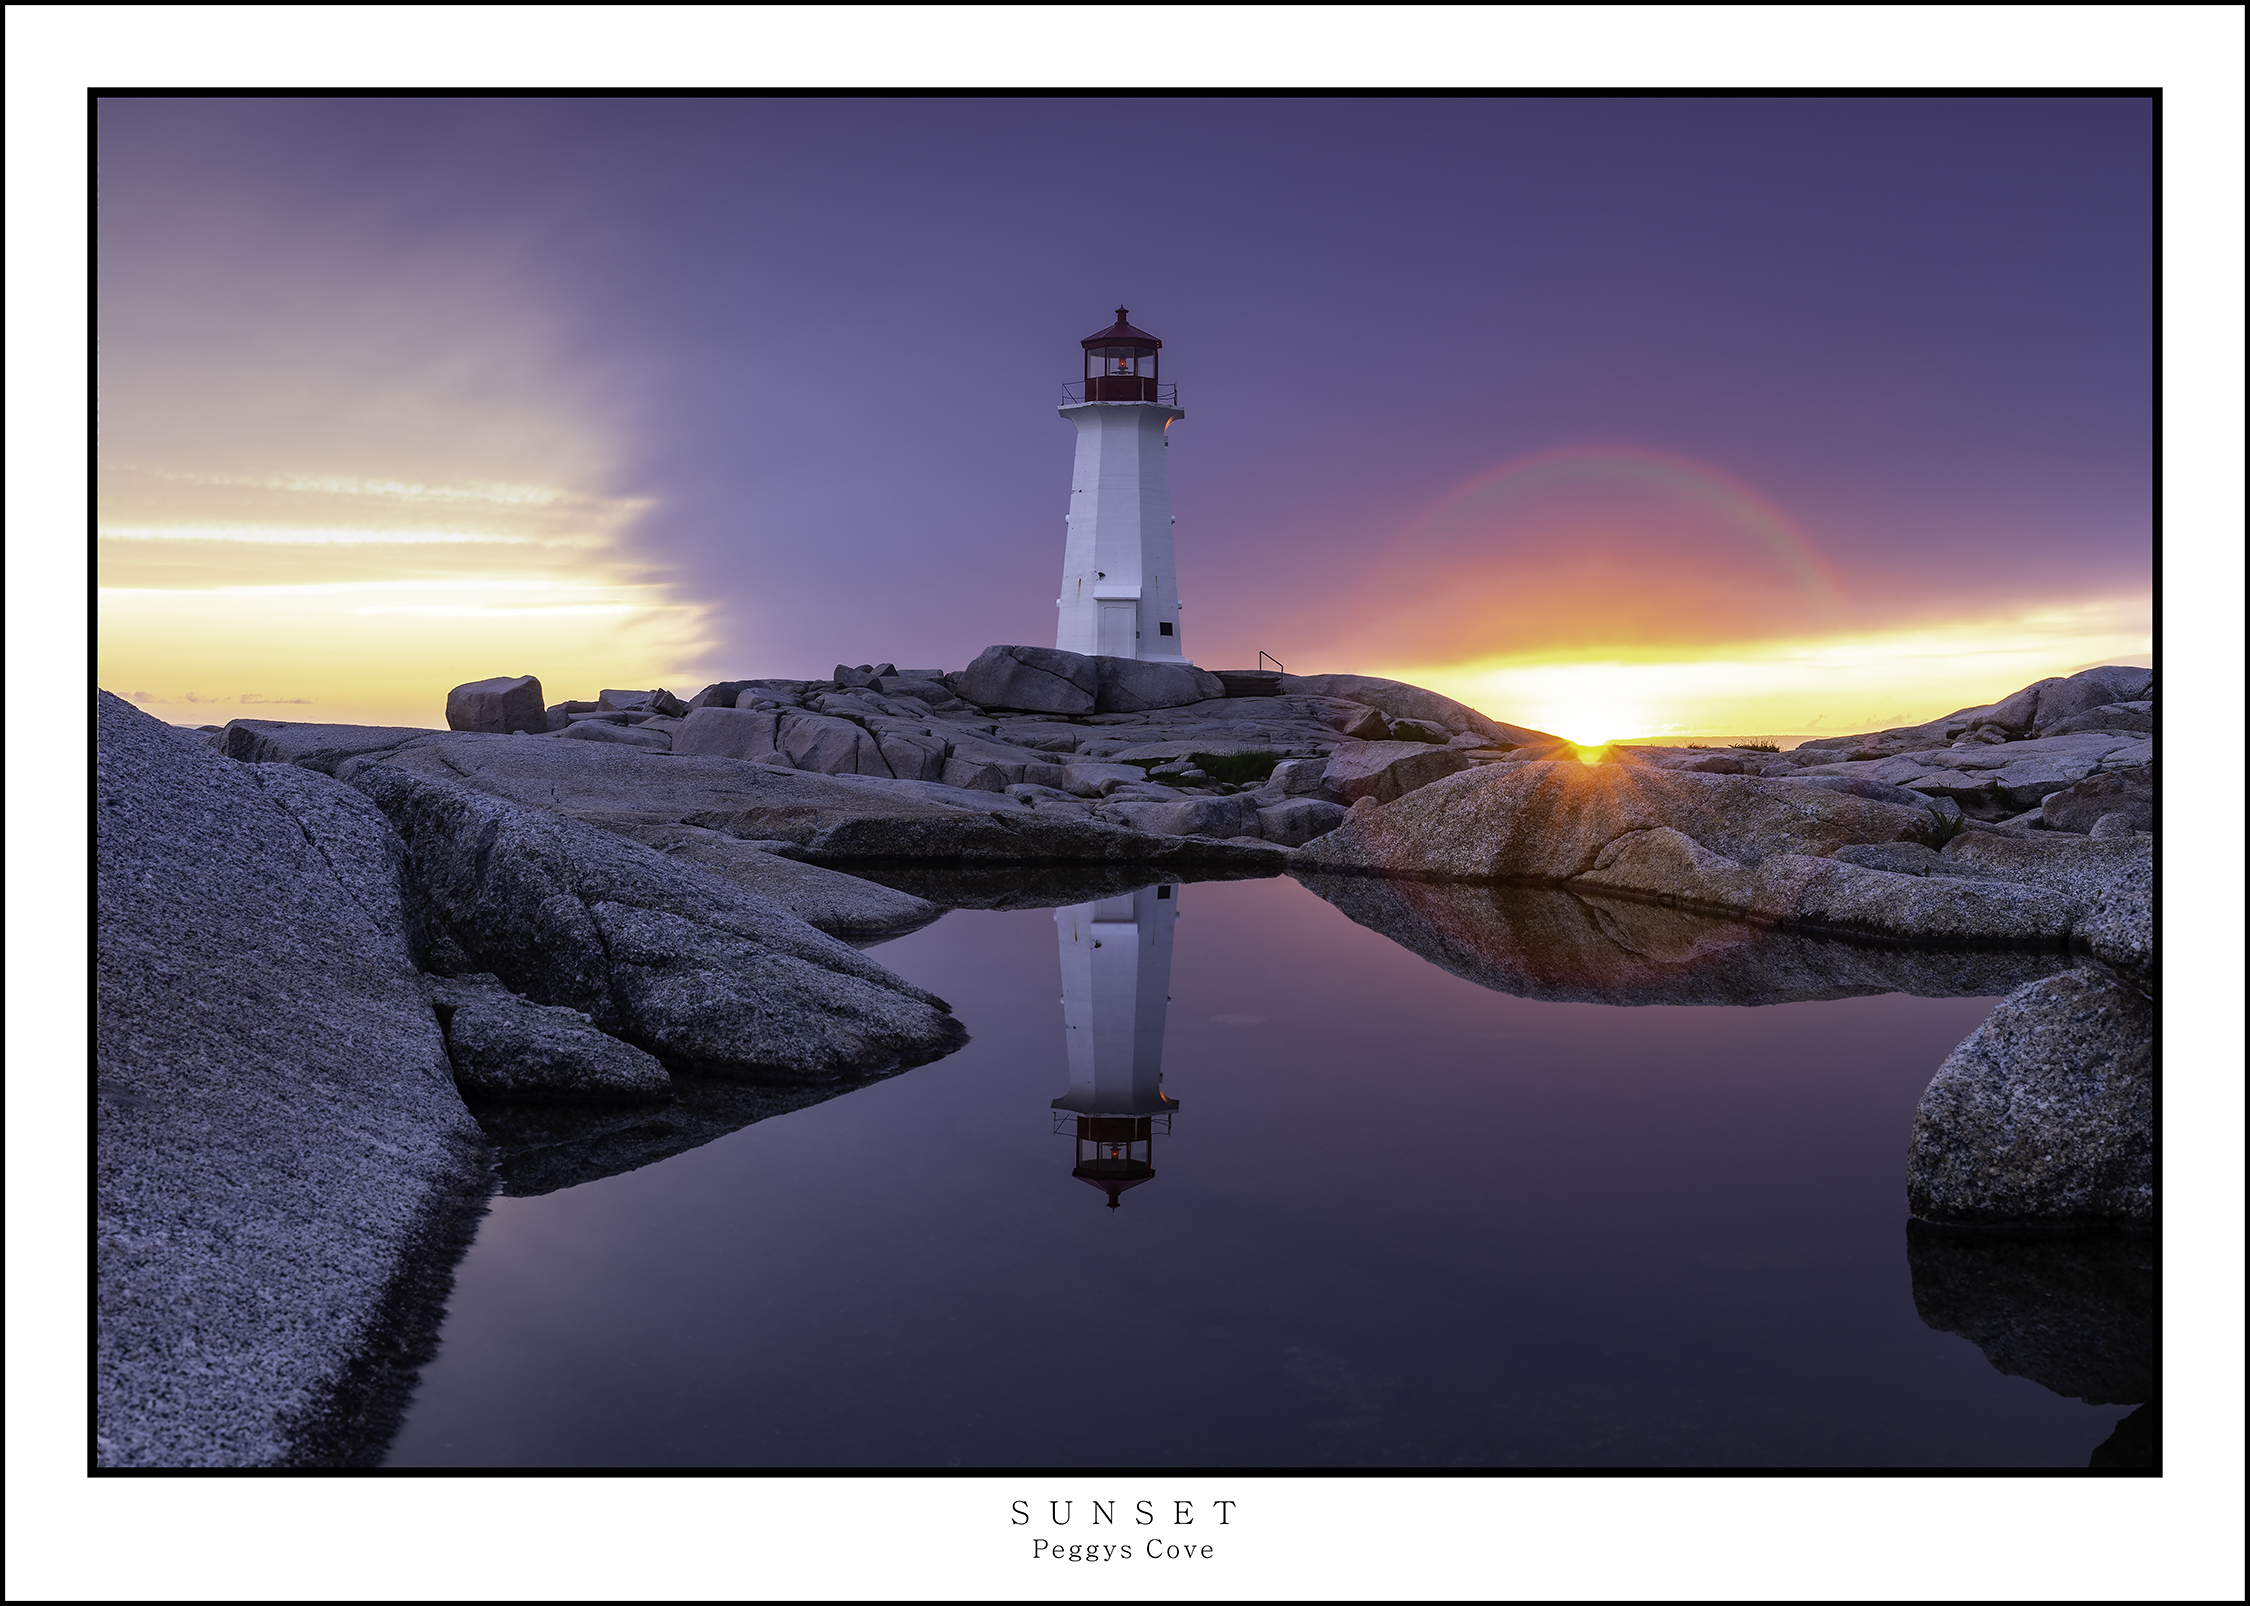 Peggys Cove lighthouse at sunset with a cloudy sky and the lighthouse reflected in a pool of water